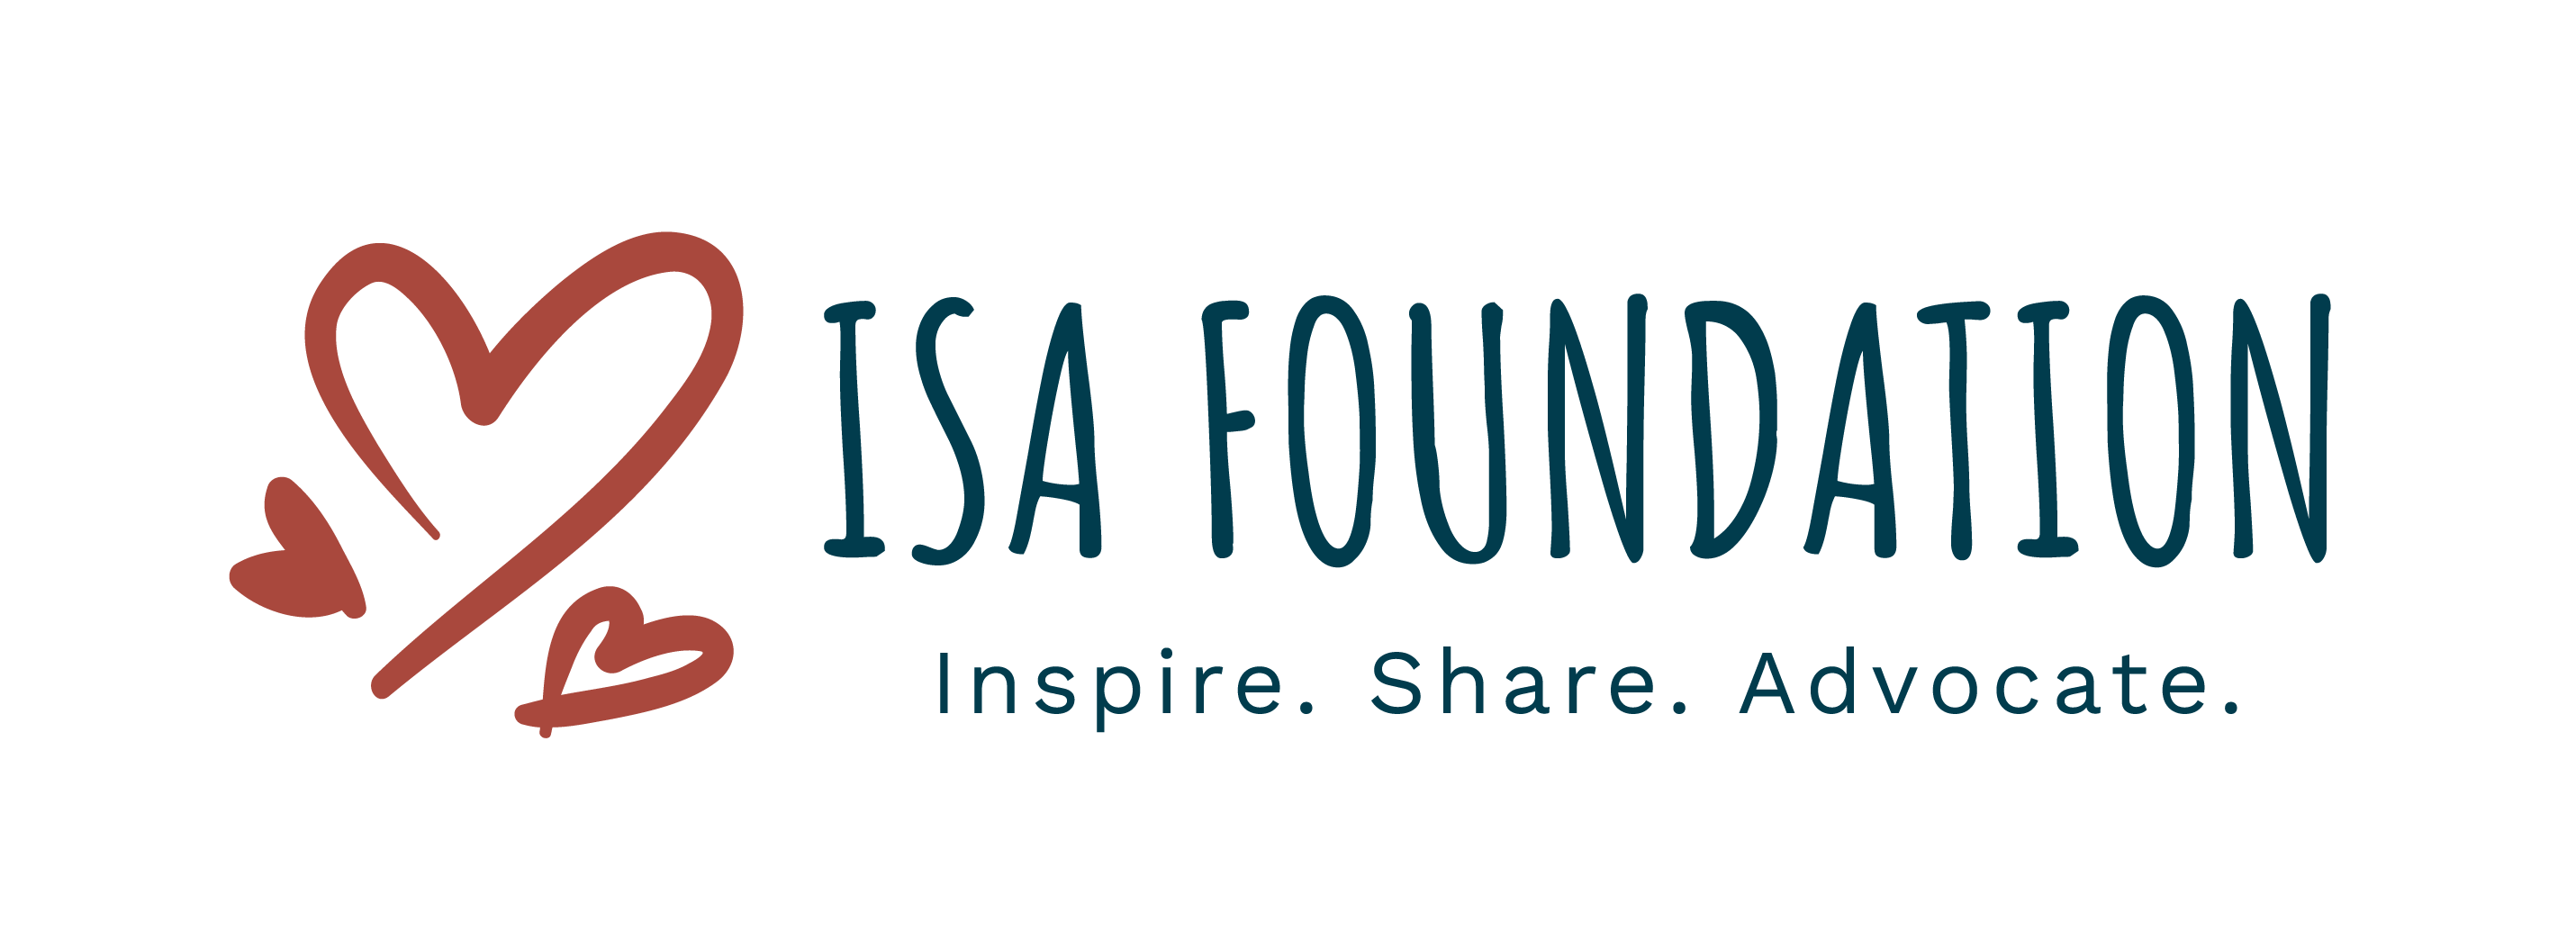 Isa Foundation | TigerMountain Foundation | Phoenix, AZ